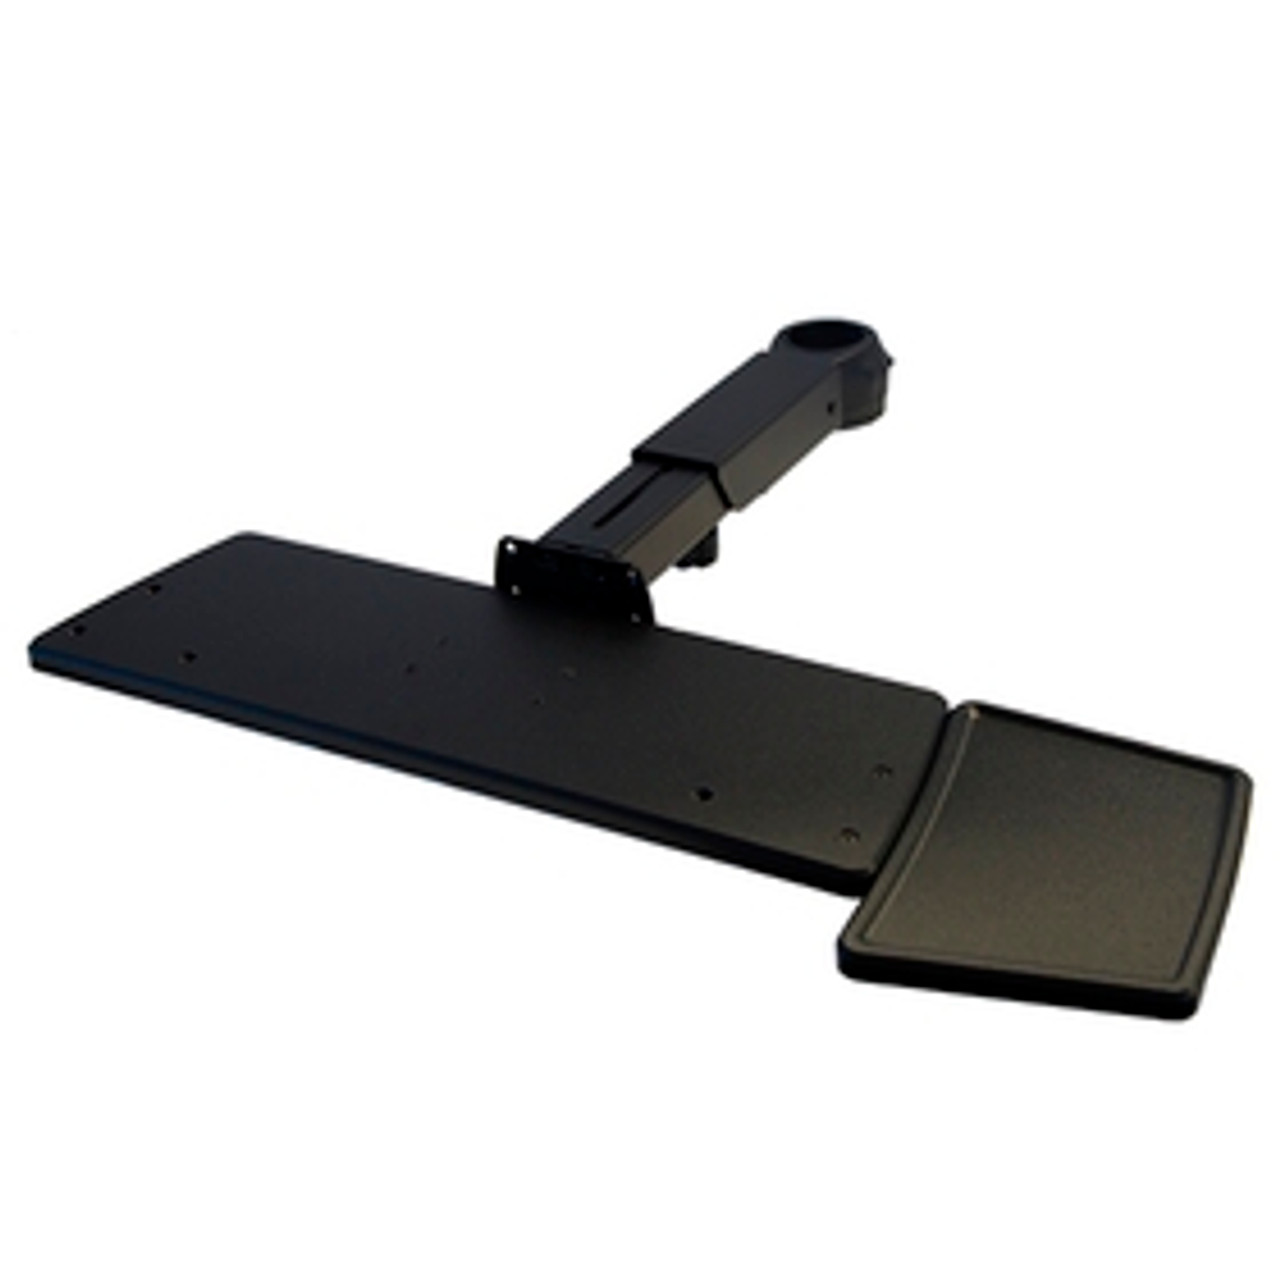 POS Keyboard Tray with Mouse Tray Telescoping Arm Rotating Clamp